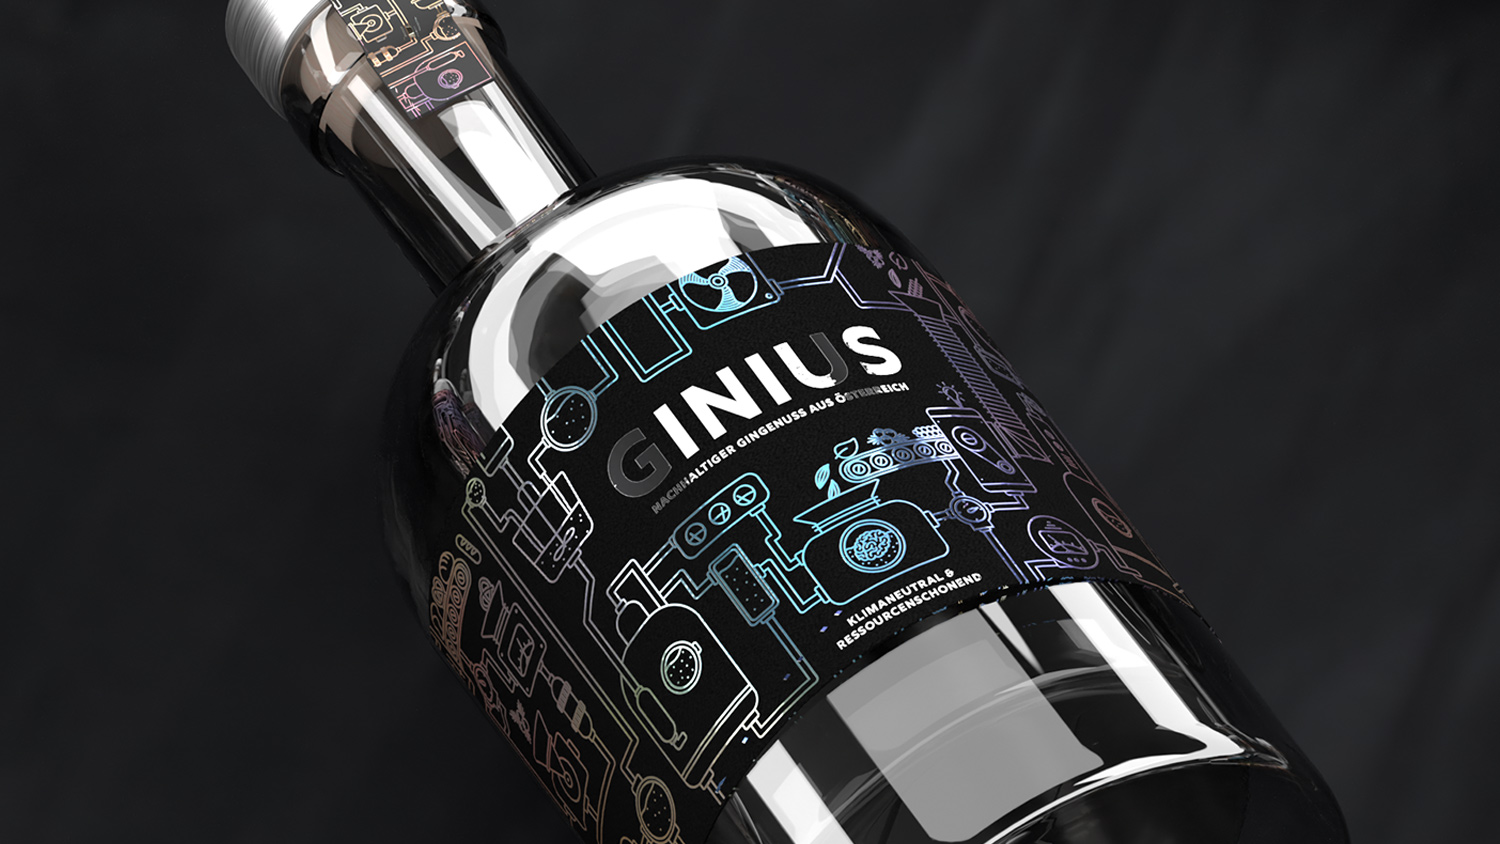 Packaging Design Concept for Genius, a Gin with a Very Special Production Process